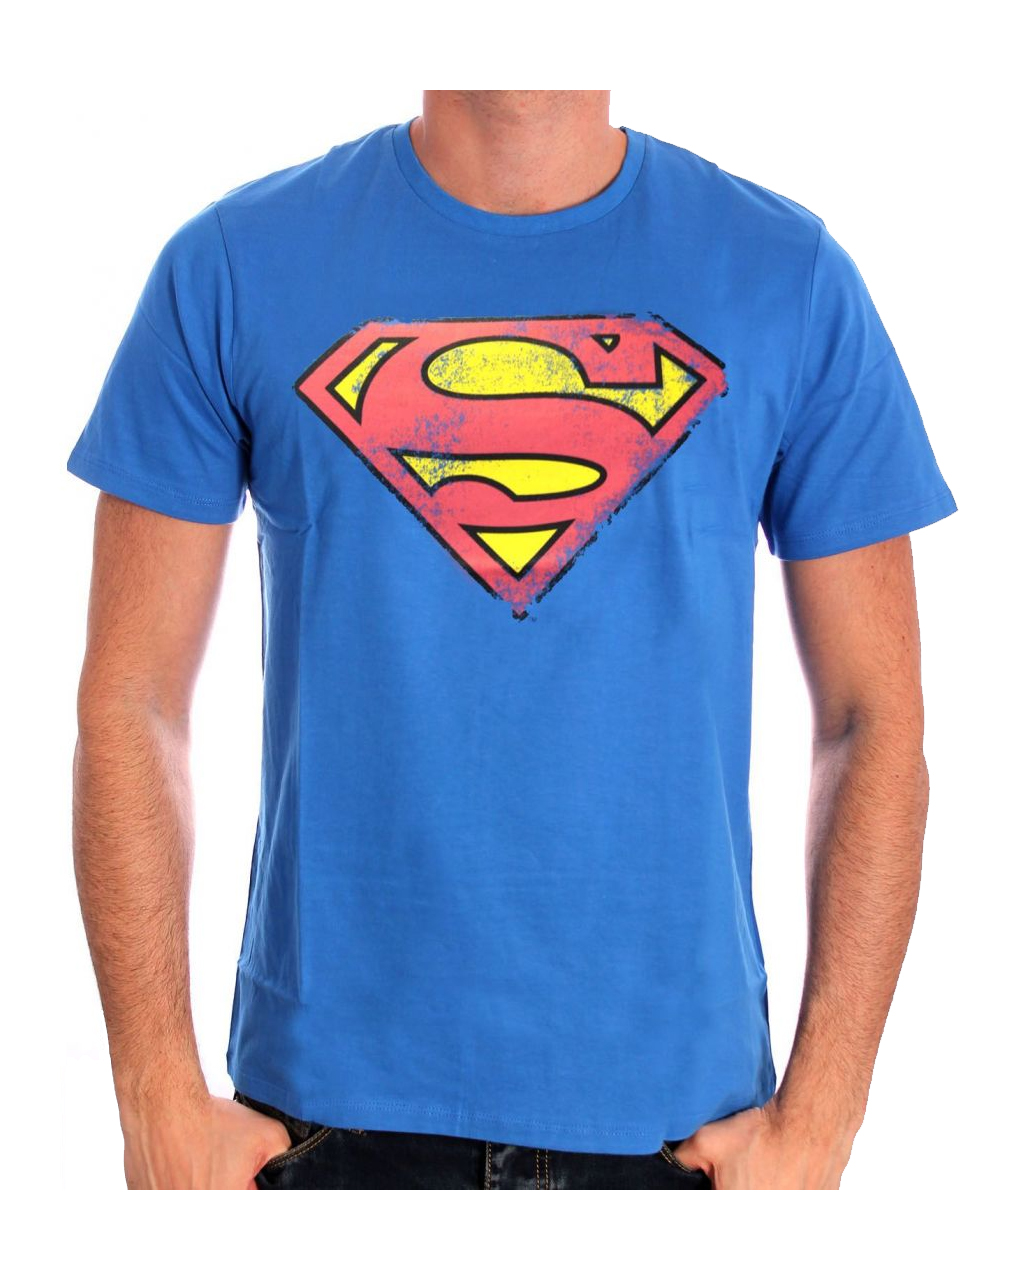 superman retro logo t shirt s superhelden t shirt kaufen horror. Black Bedroom Furniture Sets. Home Design Ideas